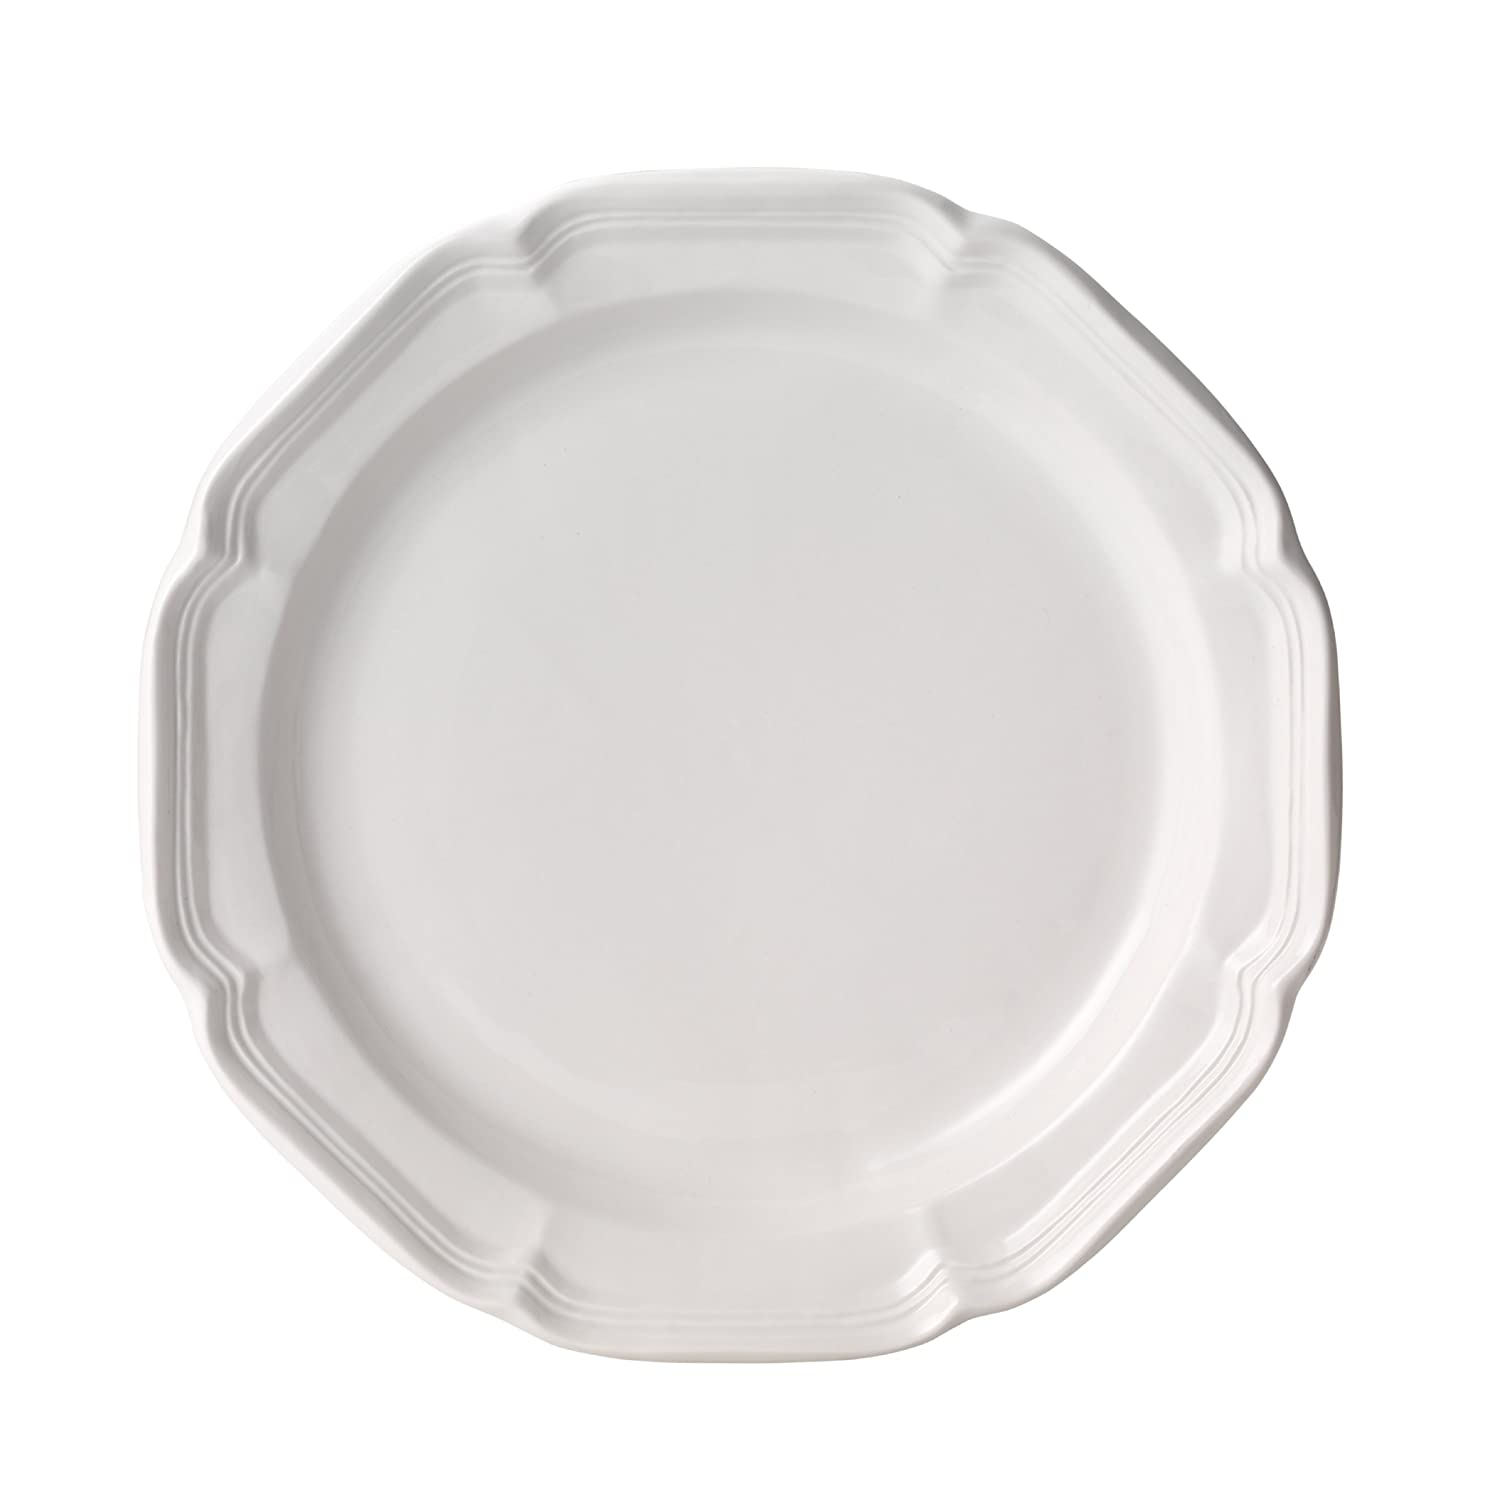 Mikasa French Country Dinner Plate, 10.75, White 10.75 F9000-201 DCBD MKCFCS 001